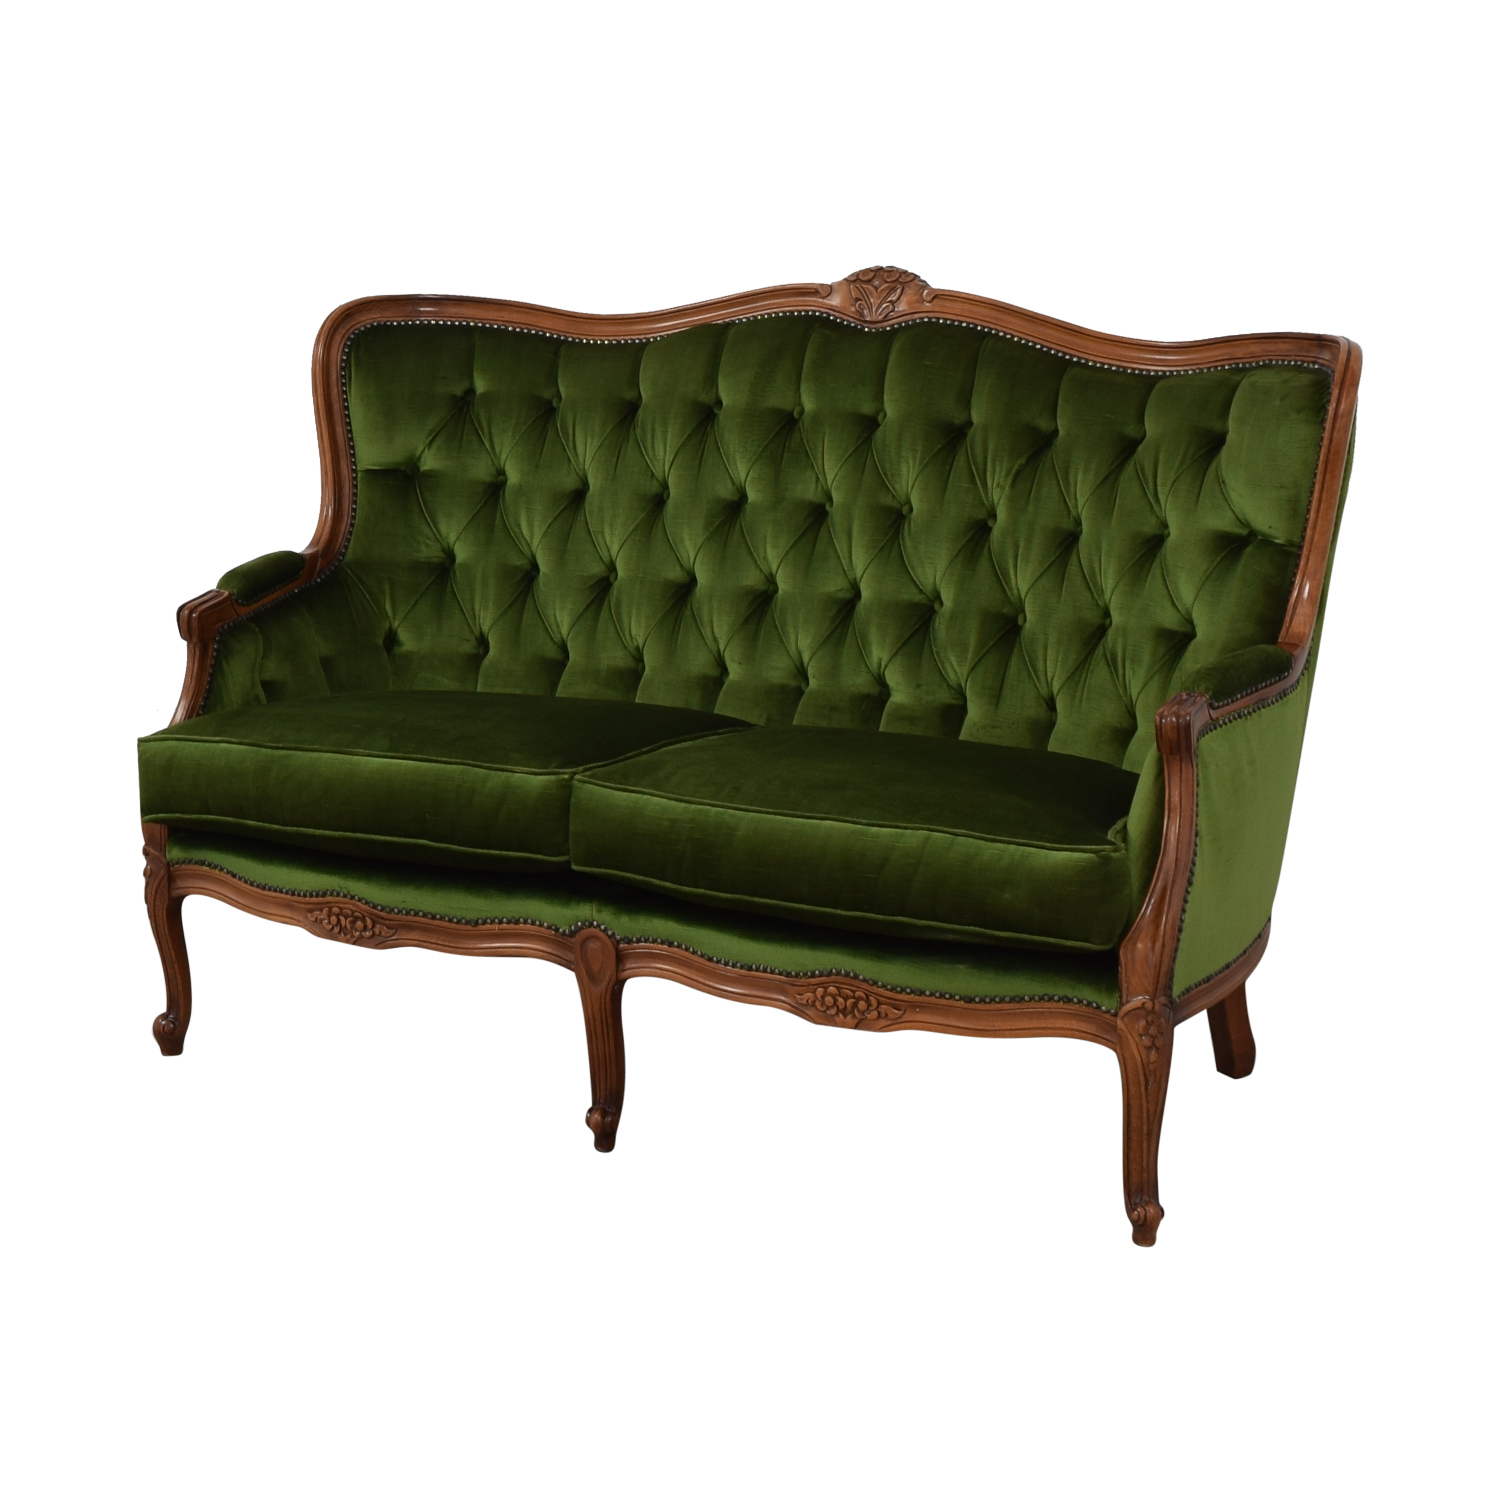 Fabulous 74 Off Biedermeier Biedermeier Green Cabriole Sofa Sofas Ncnpc Chair Design For Home Ncnpcorg